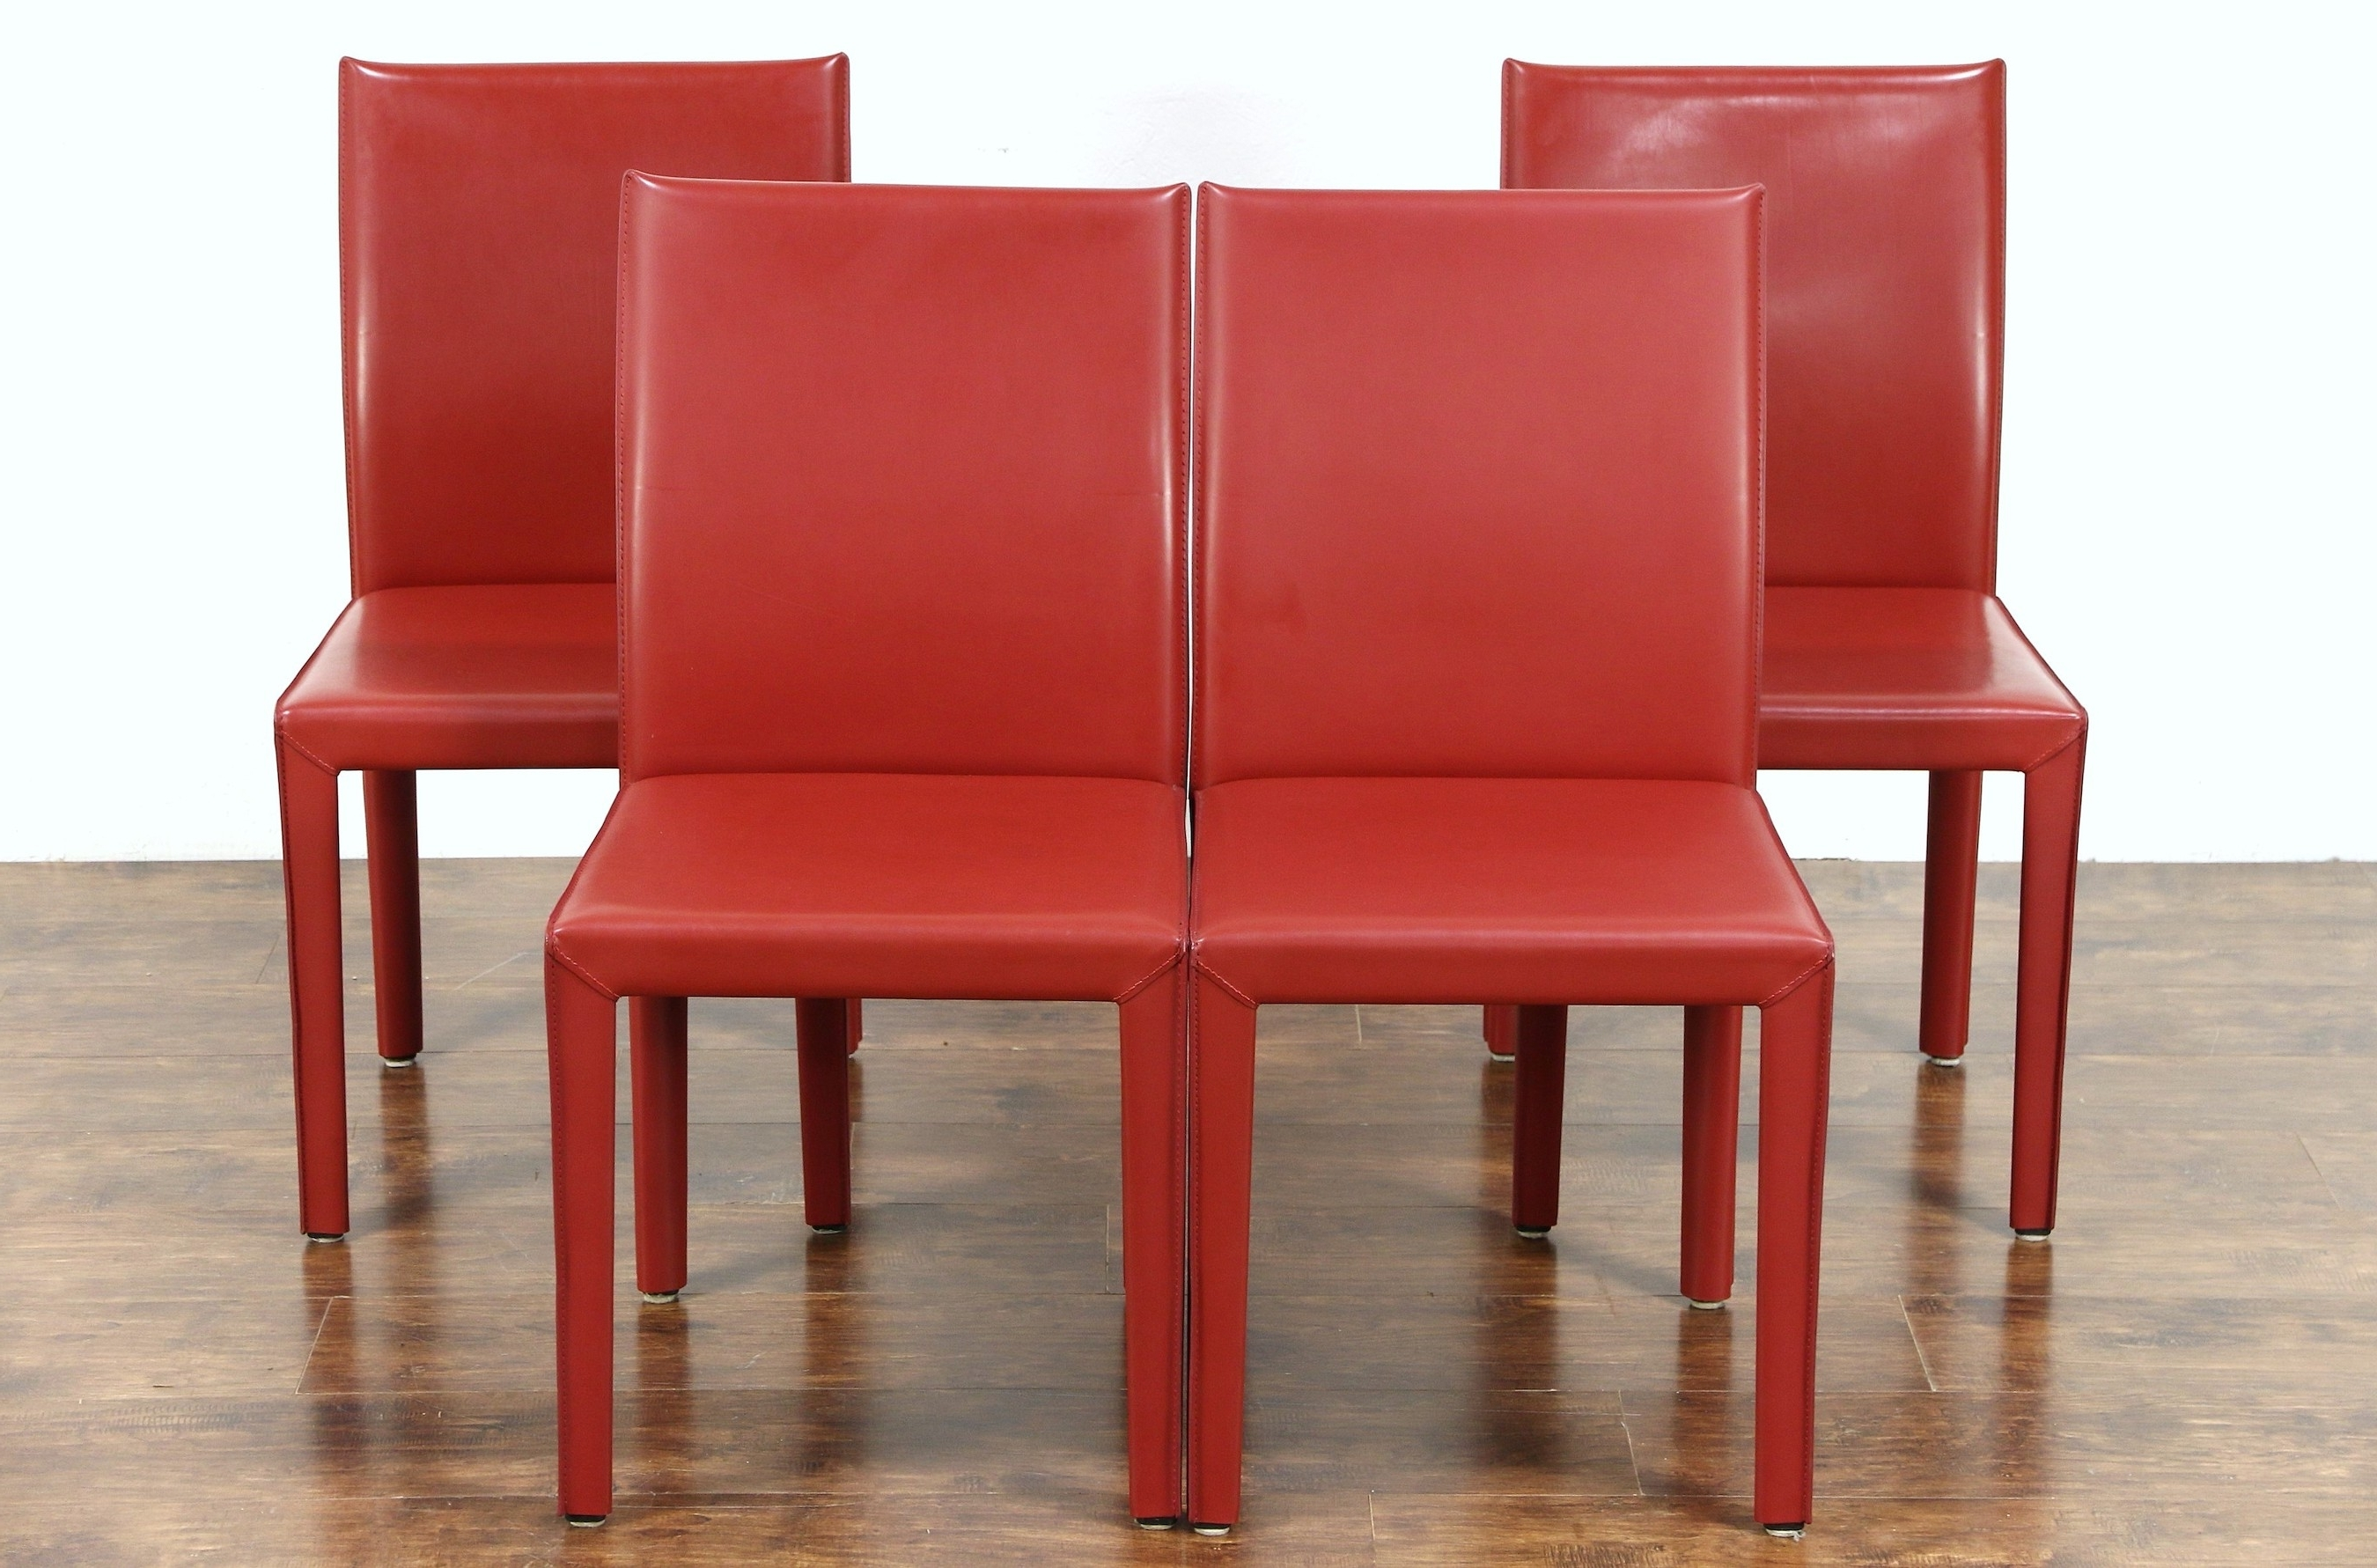 Newest Sold – Set Of 4 Red Leather Dining Or Game Table Chairs, Signed Regarding Red Leather Dining Chairs (Gallery 5 of 25)